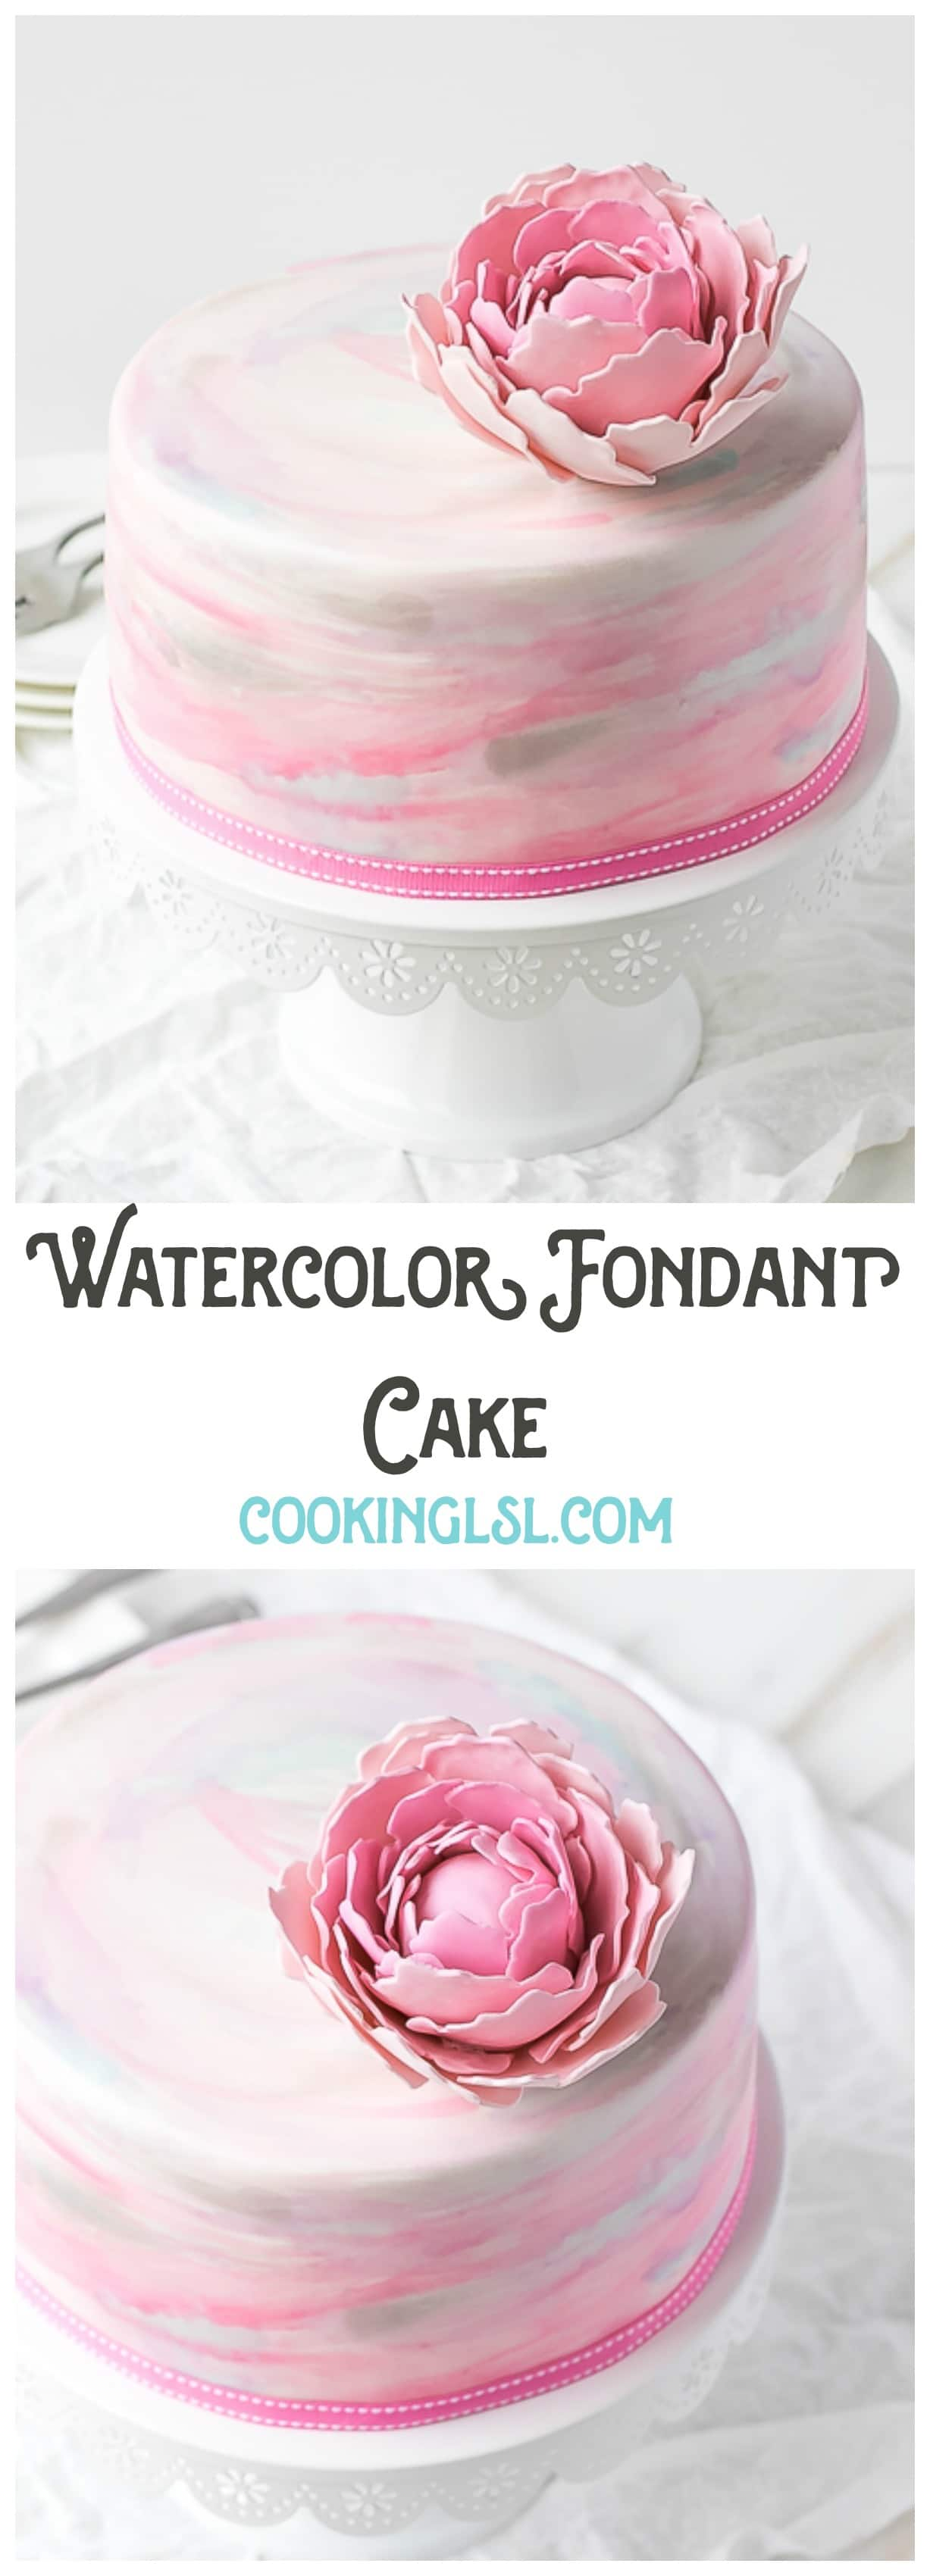 Watercolor-Fondant-Cake-my-birthday-cake-this-year-Layers-of-chocolate-cake-brushed-with-raspberry-syrup-homemade-chocolate-whipped-cream-and-covered-with-hand-painted-watercolor-fondant.